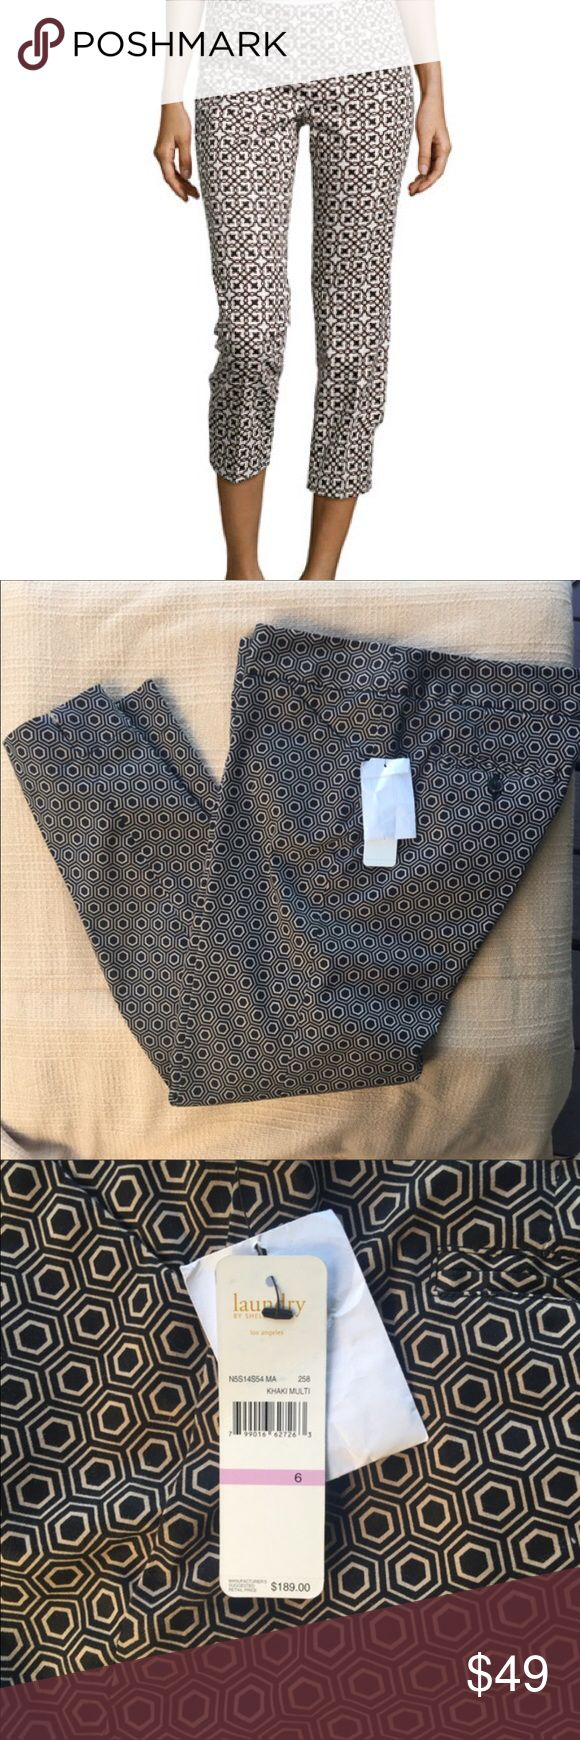 "NWT Laundry Shelli Segal Cropped Pants New with tags slick cropped pants, original price was $189. These are sleek enough for the office, and cool enough to wear out in the evening as well. You can't go wrong. The inseam is 26"", waist (laid flat) about 16 1/2 "". Laundry by Shelli Segal Pants Capris"